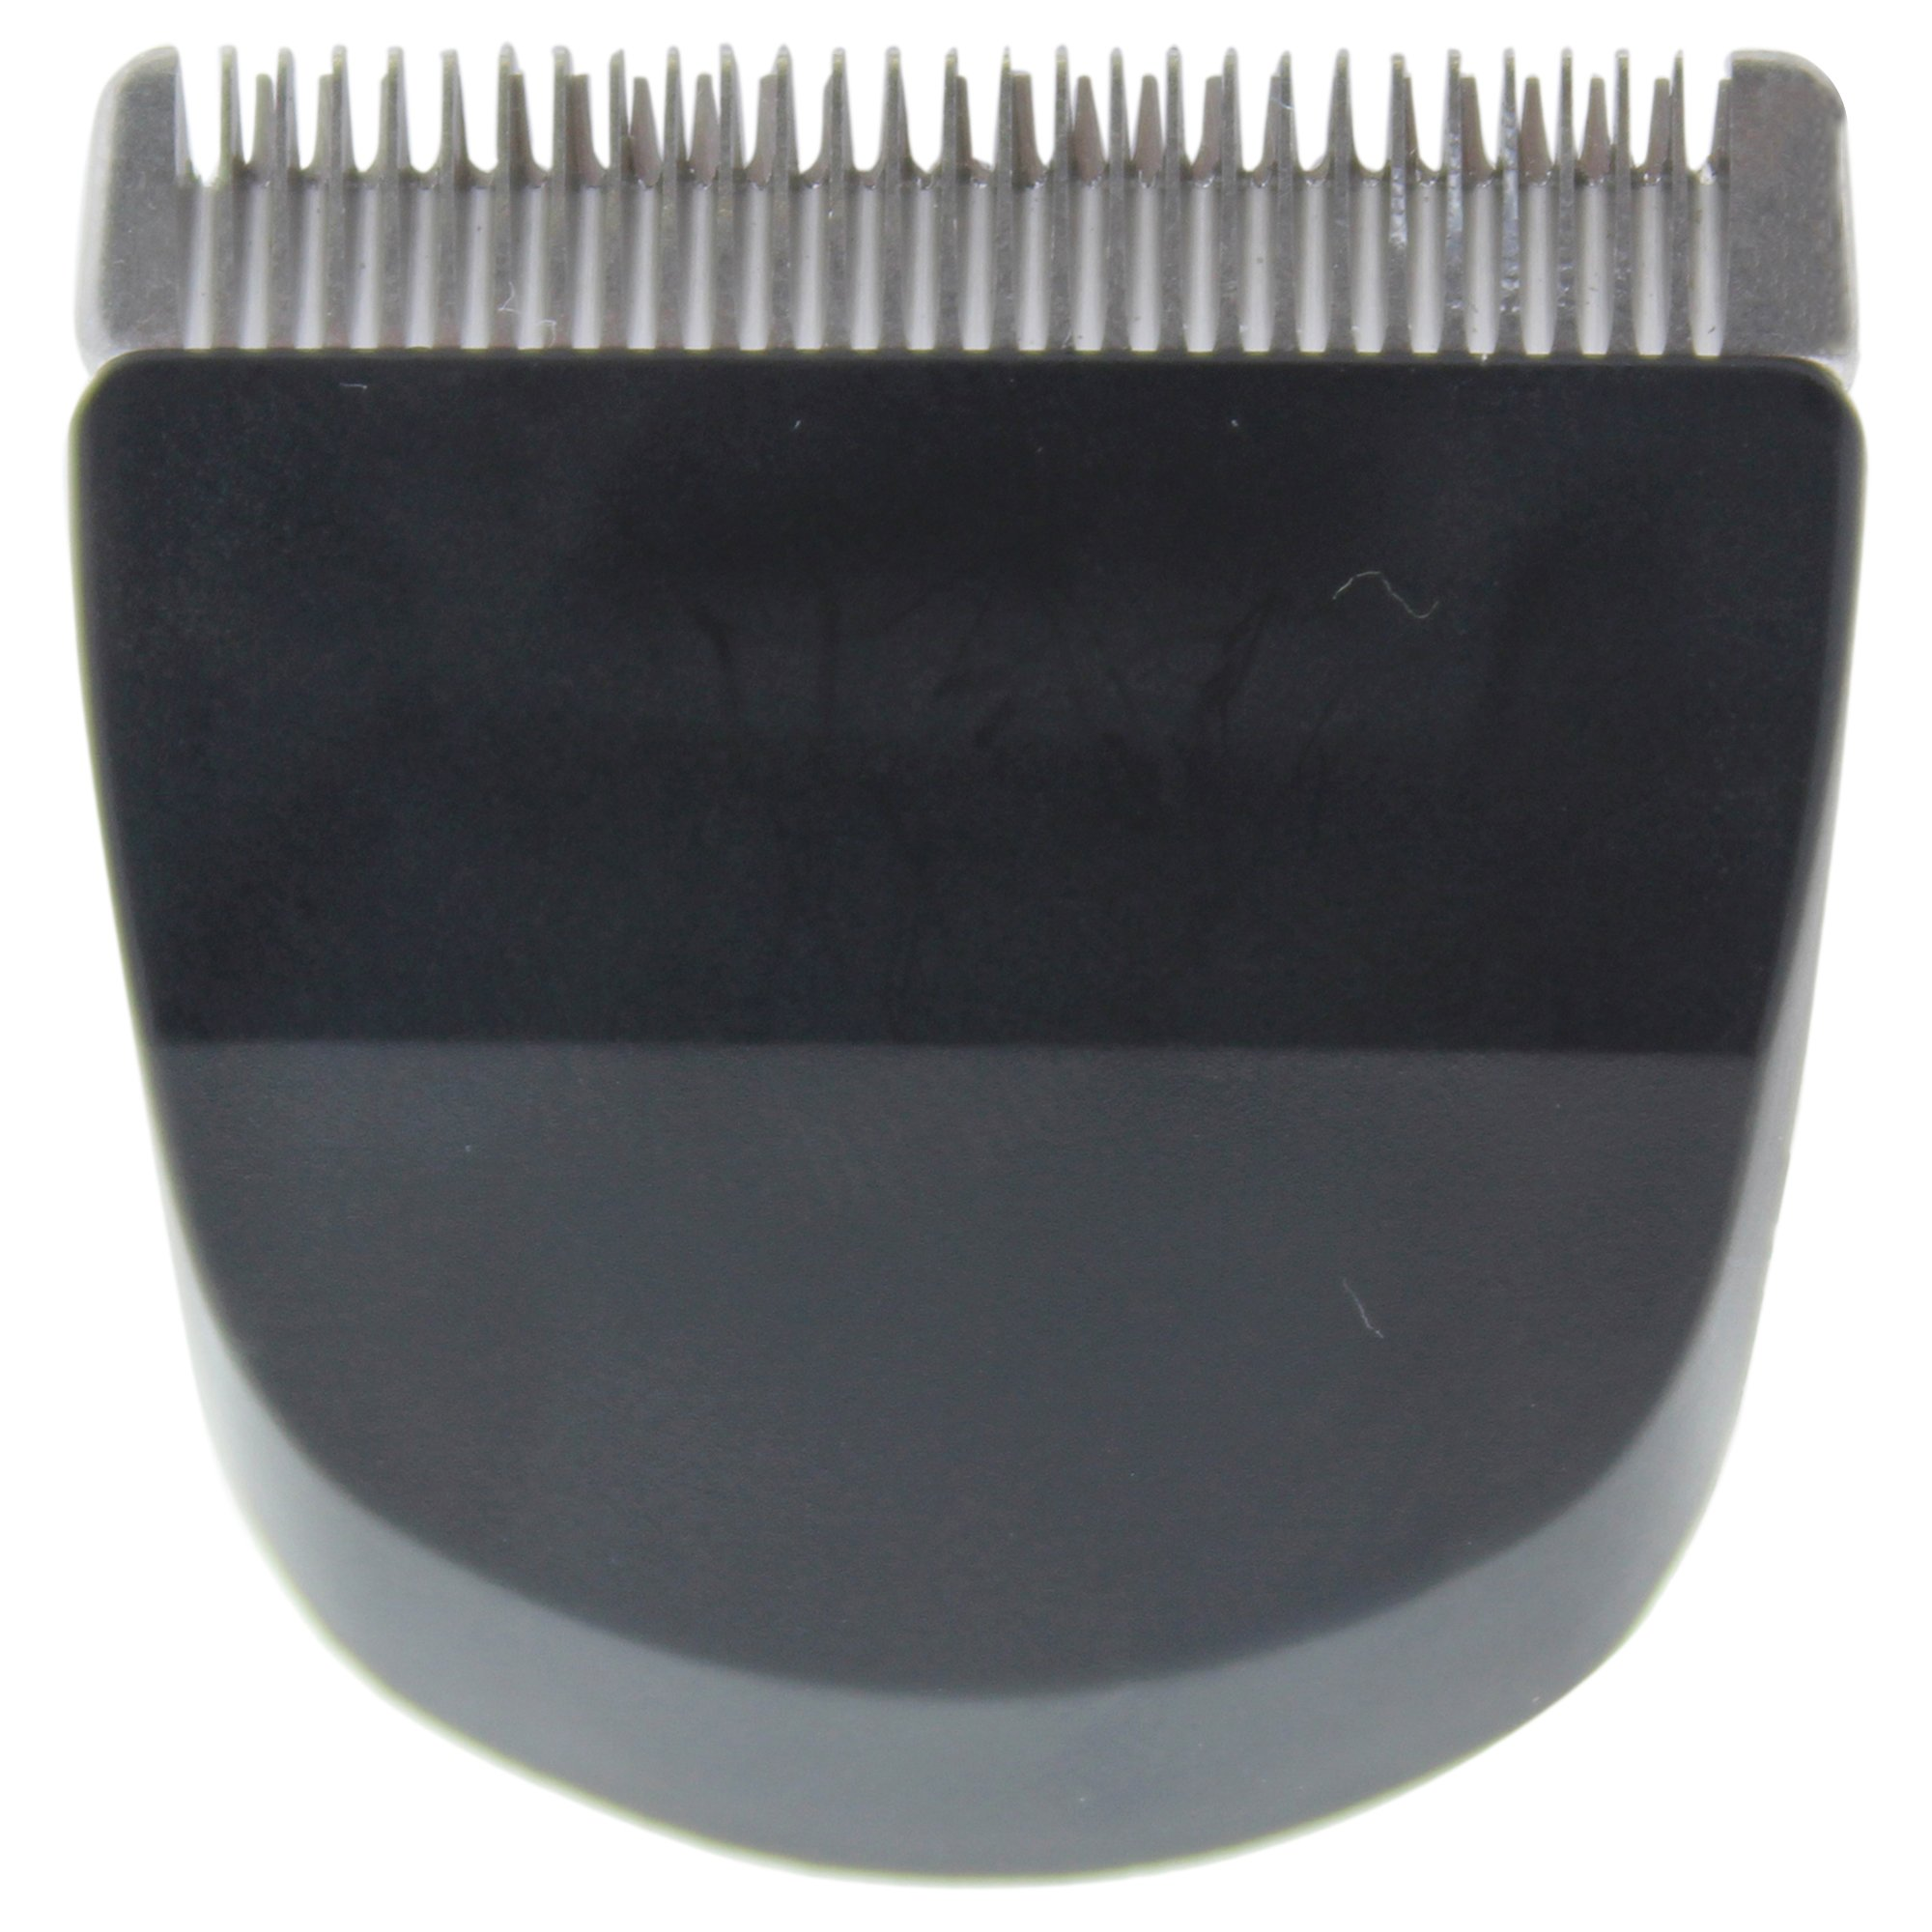 Wahl Professional Peanut Snap On Clipper/Trimmer Blade (Black) # 2068-1001 – For Wahl Peanuts (Black)